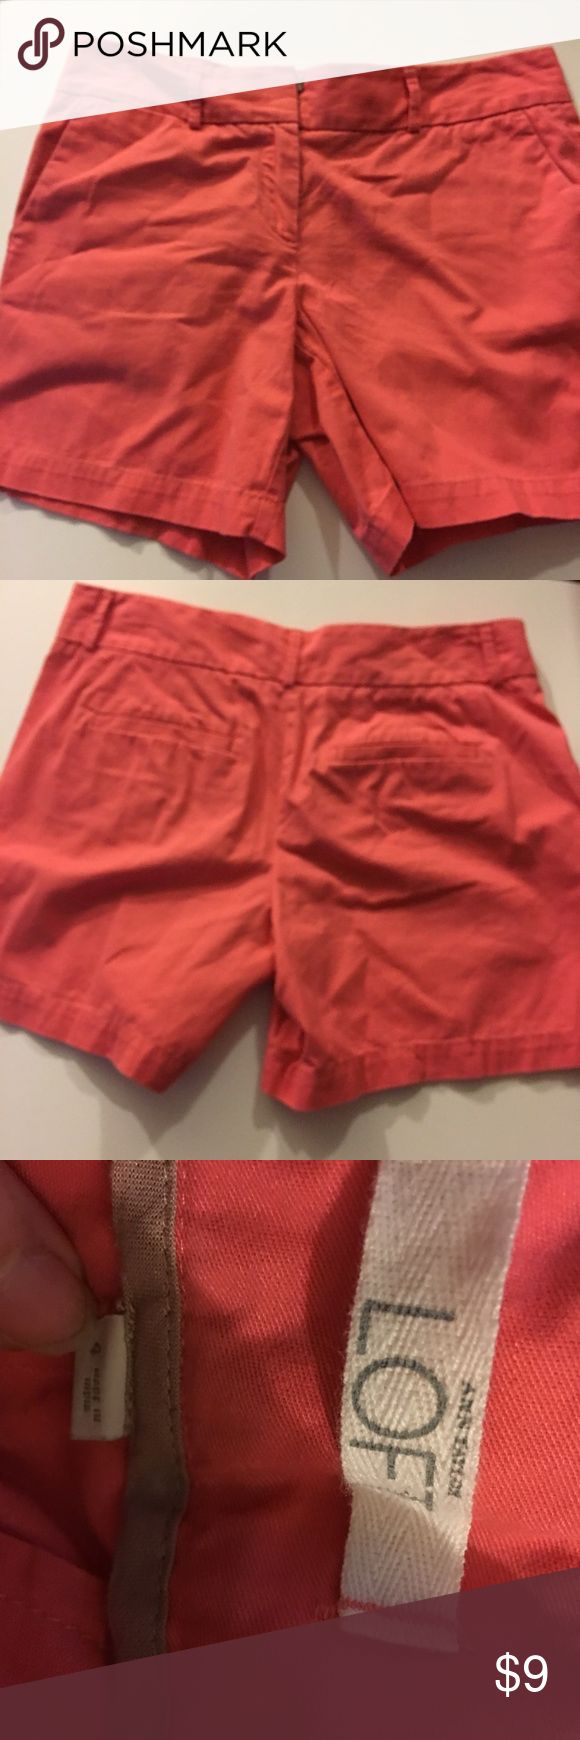 ✅2 for $15 Ann Taylor peach shorts Excellent condition. No tears, stains or marks. Combine with any item with a ✅ for a $15 bundle or add three more items for 30% Off Bundles. Ann Taylor Shorts